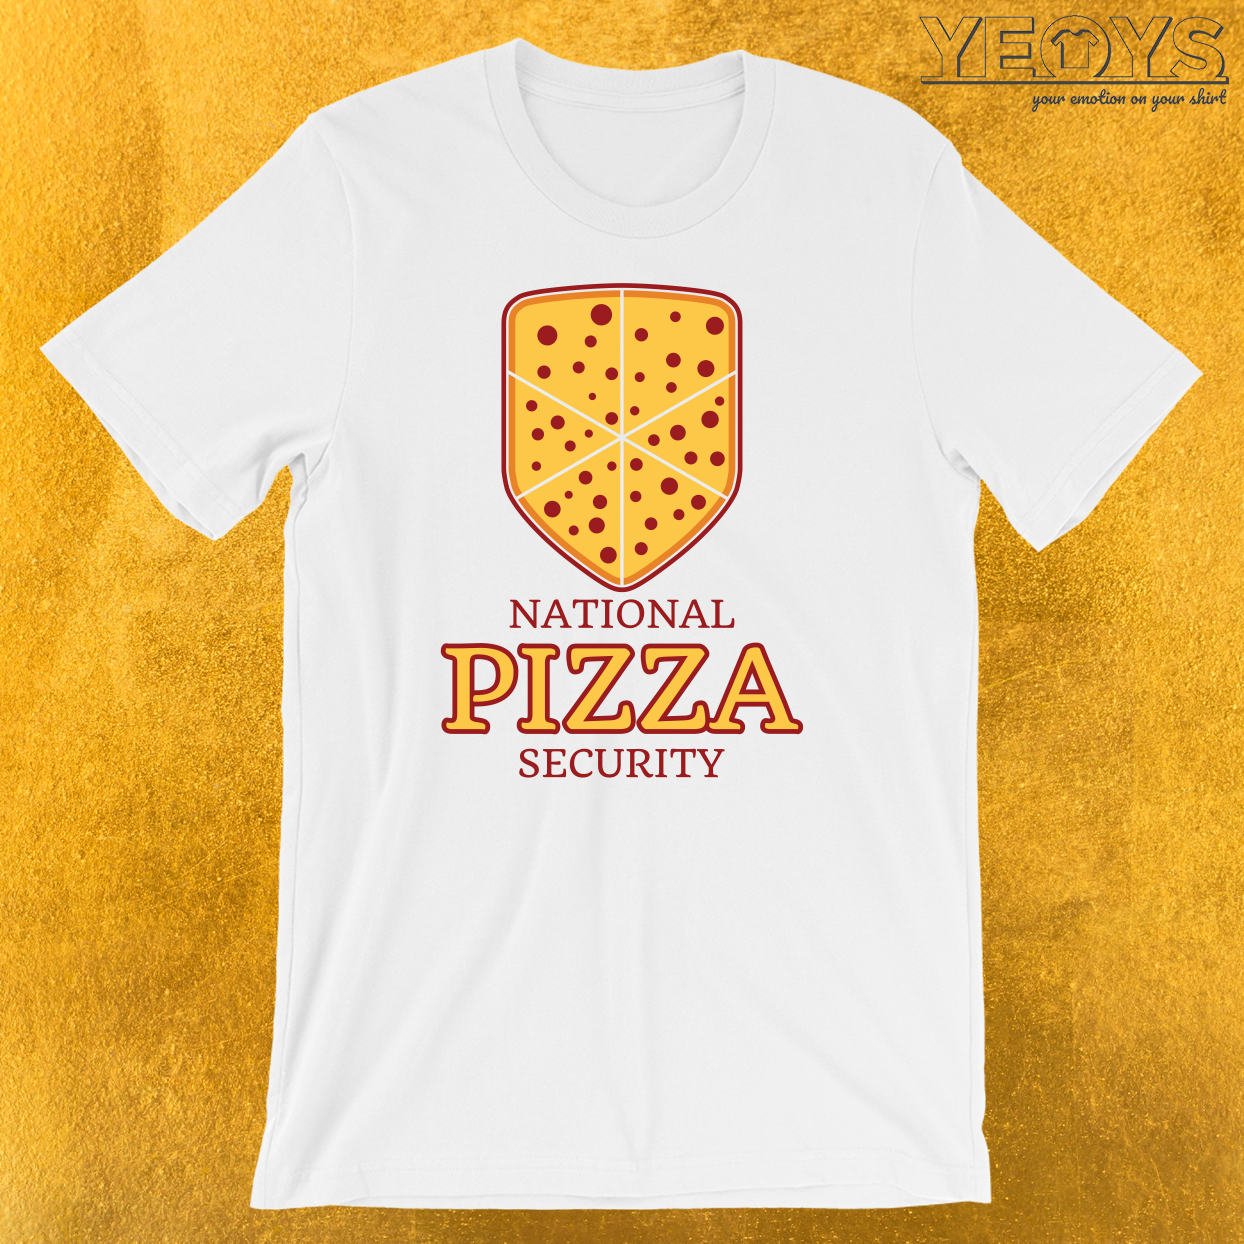 National Pizza Security T-Shirt